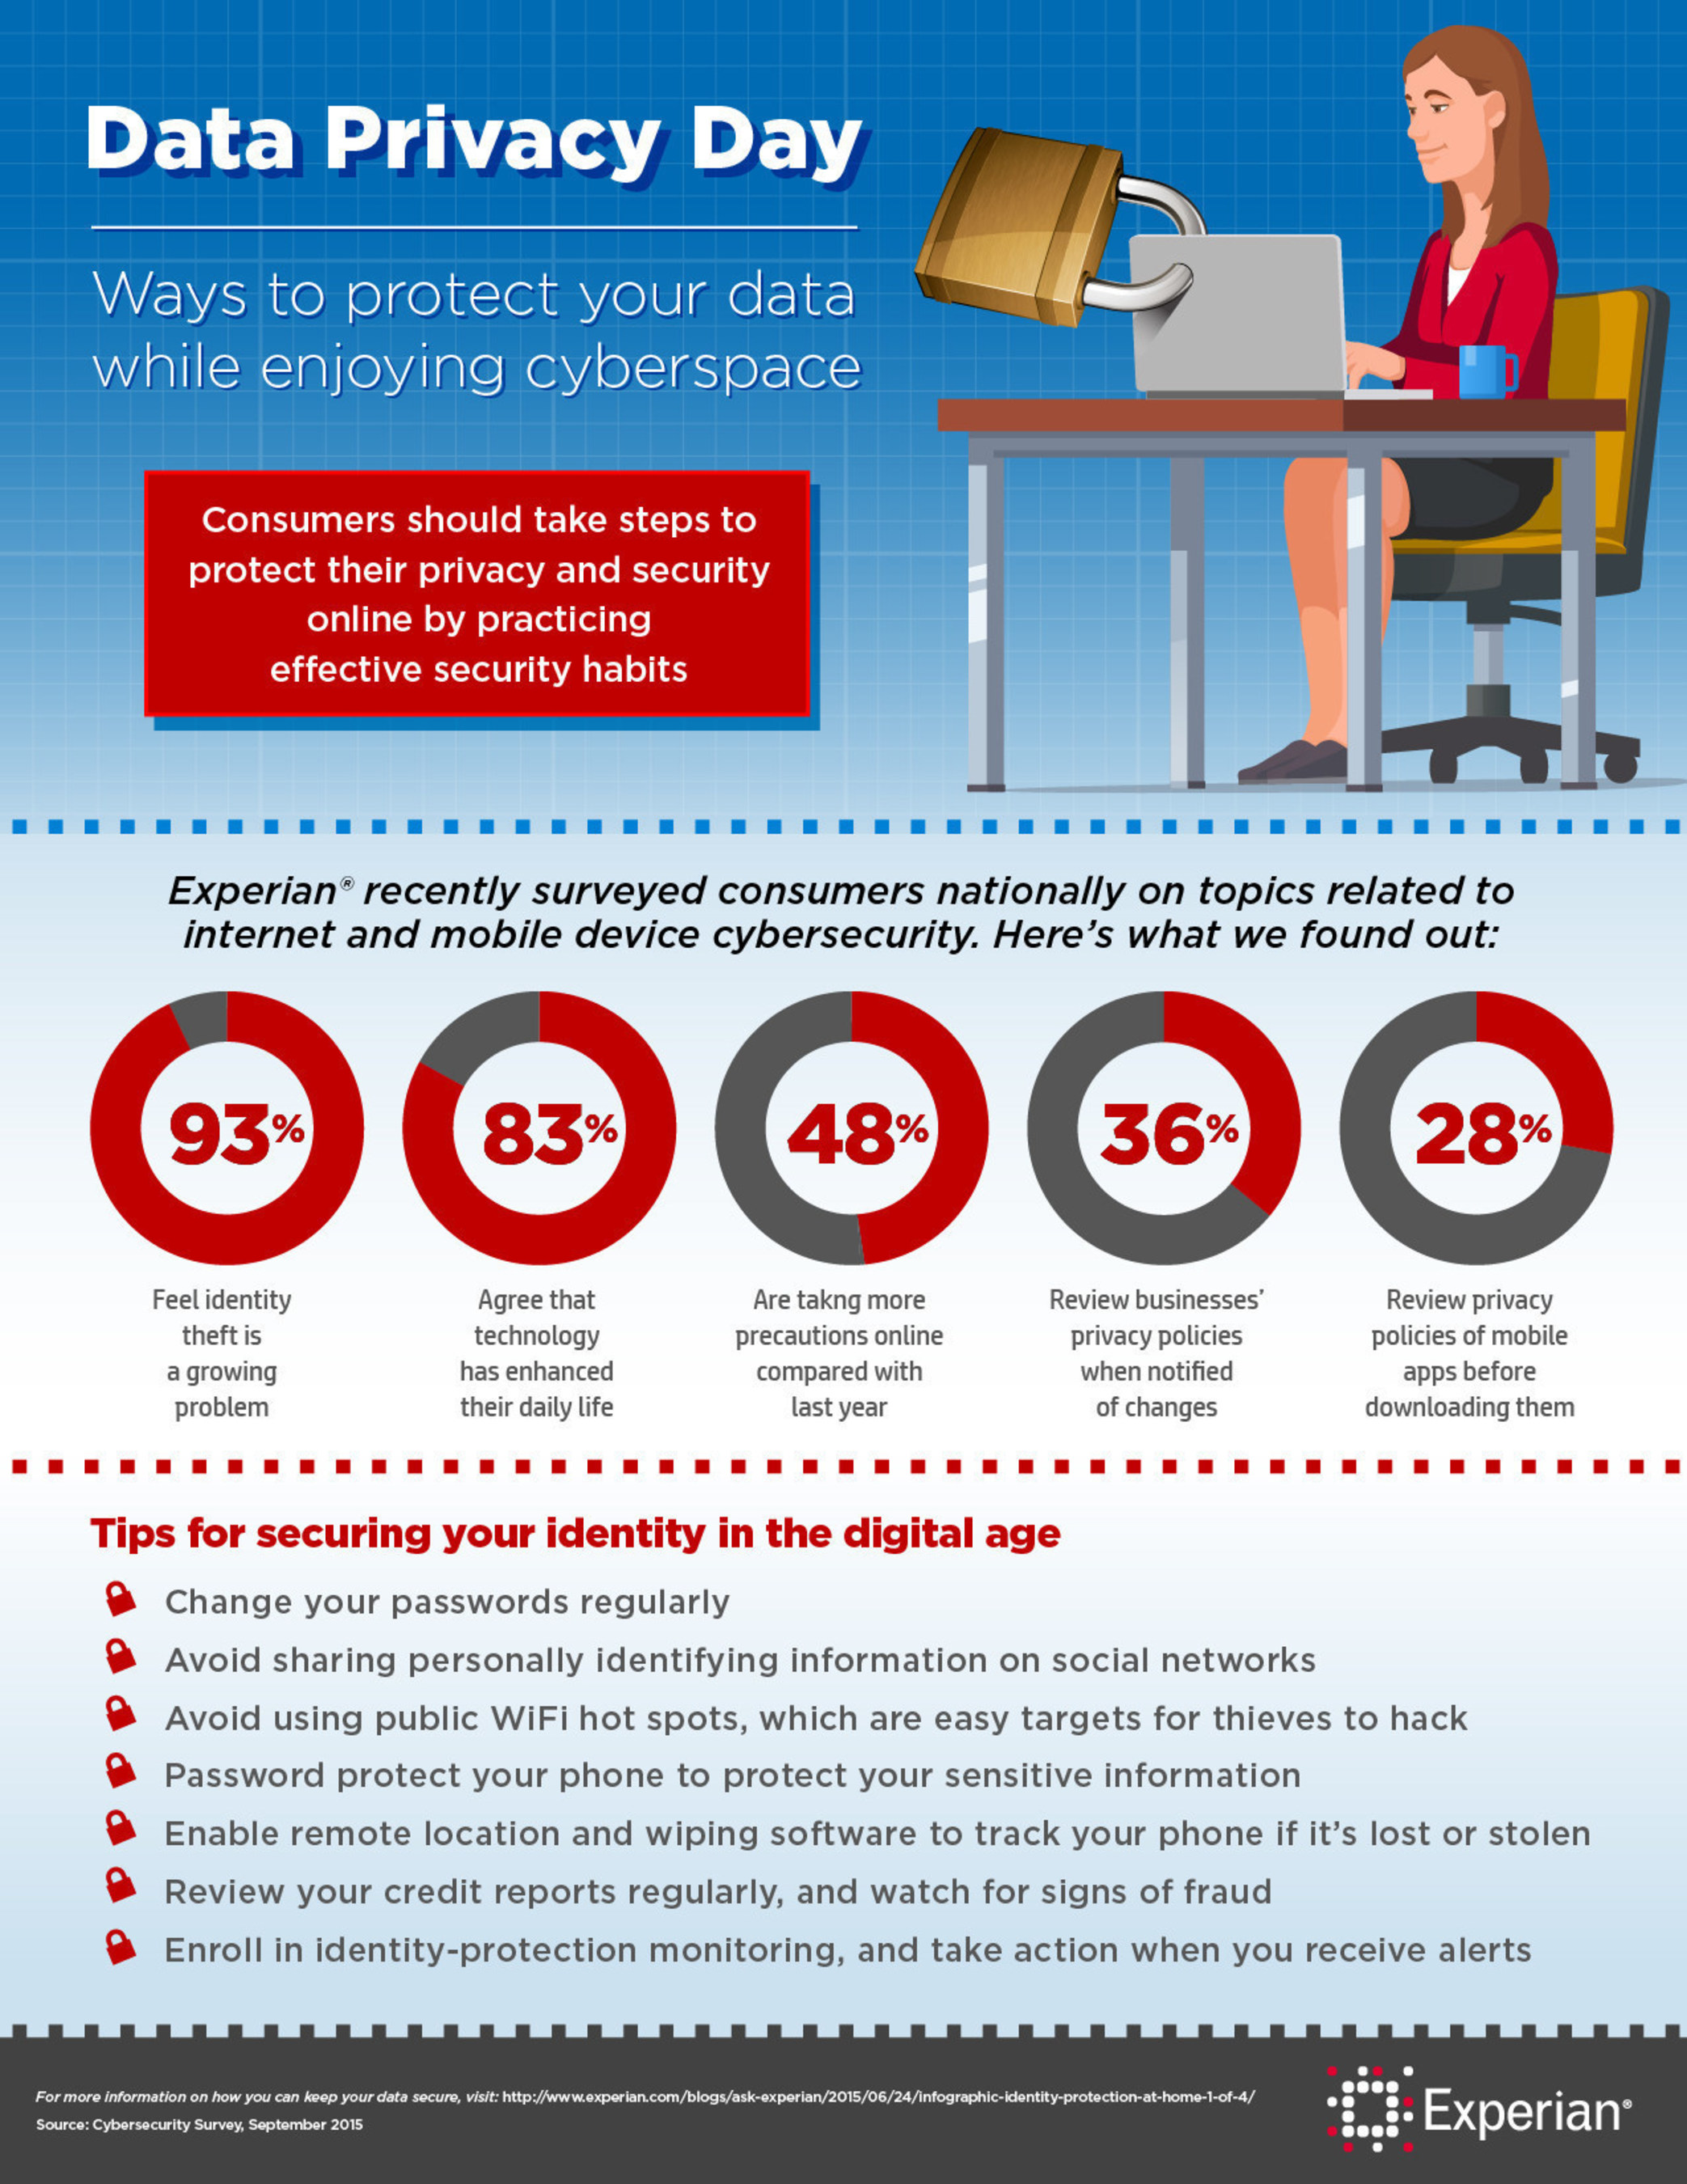 Data Privacy Day is a good reminder for consumers to take steps to protect their privacy online and practice ...